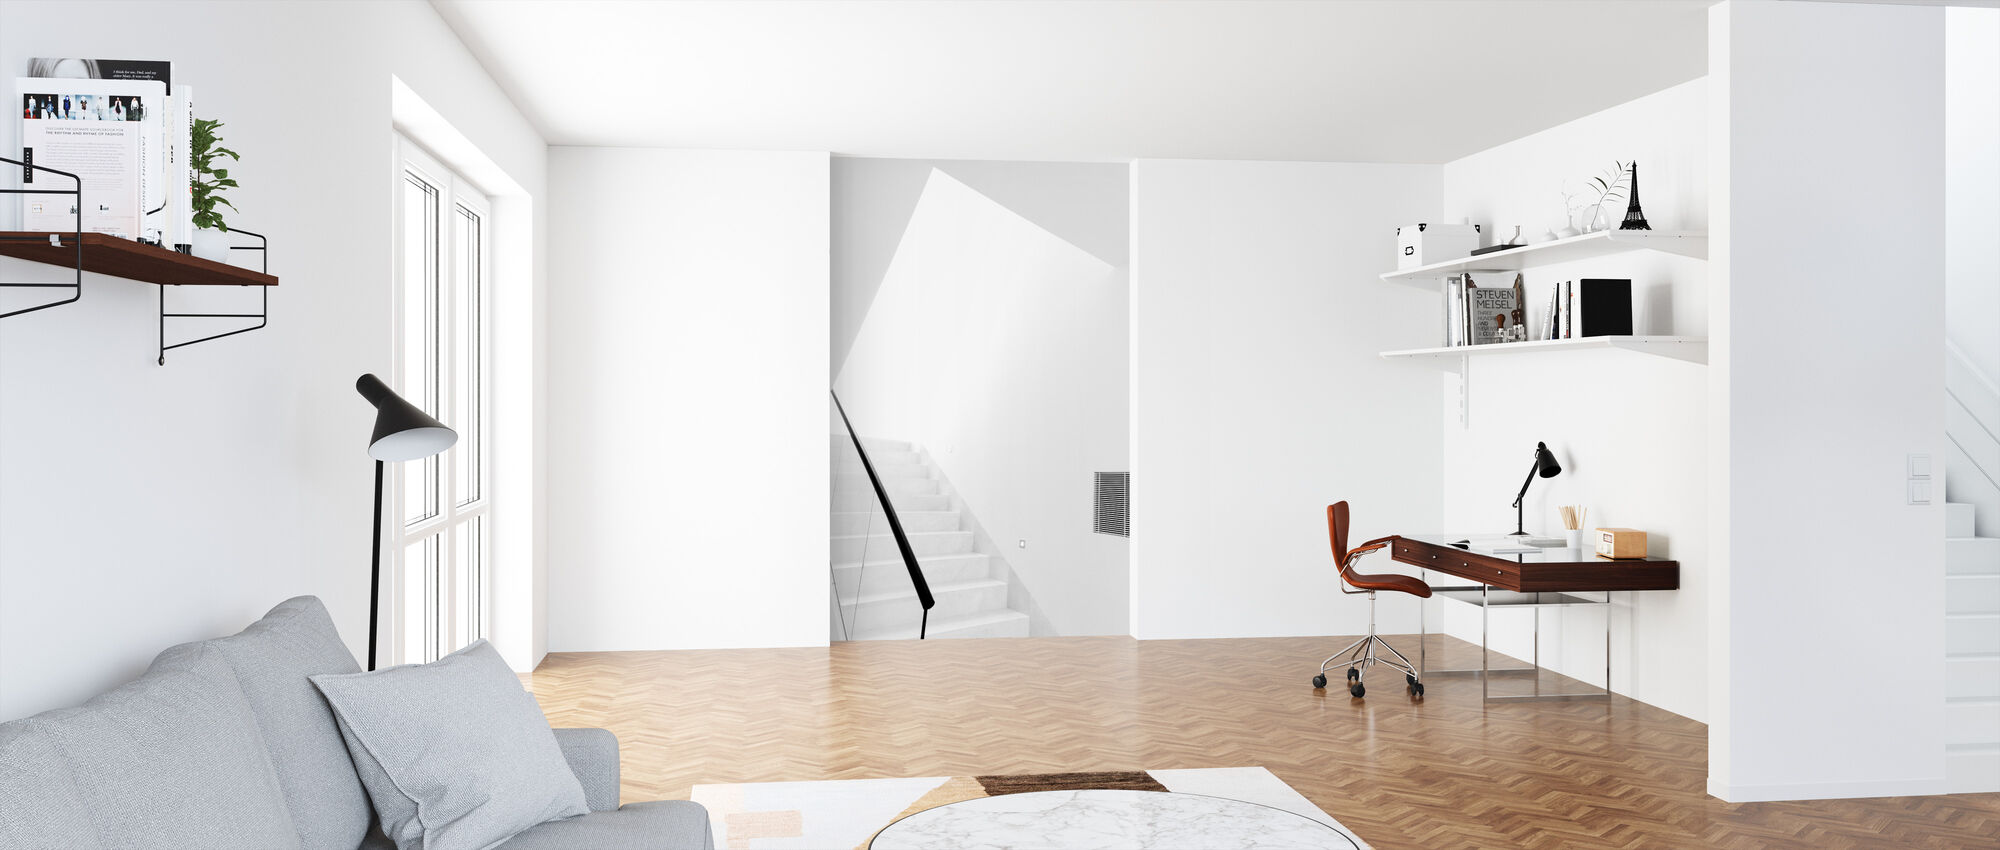 White Staircase - Wallpaper - Office